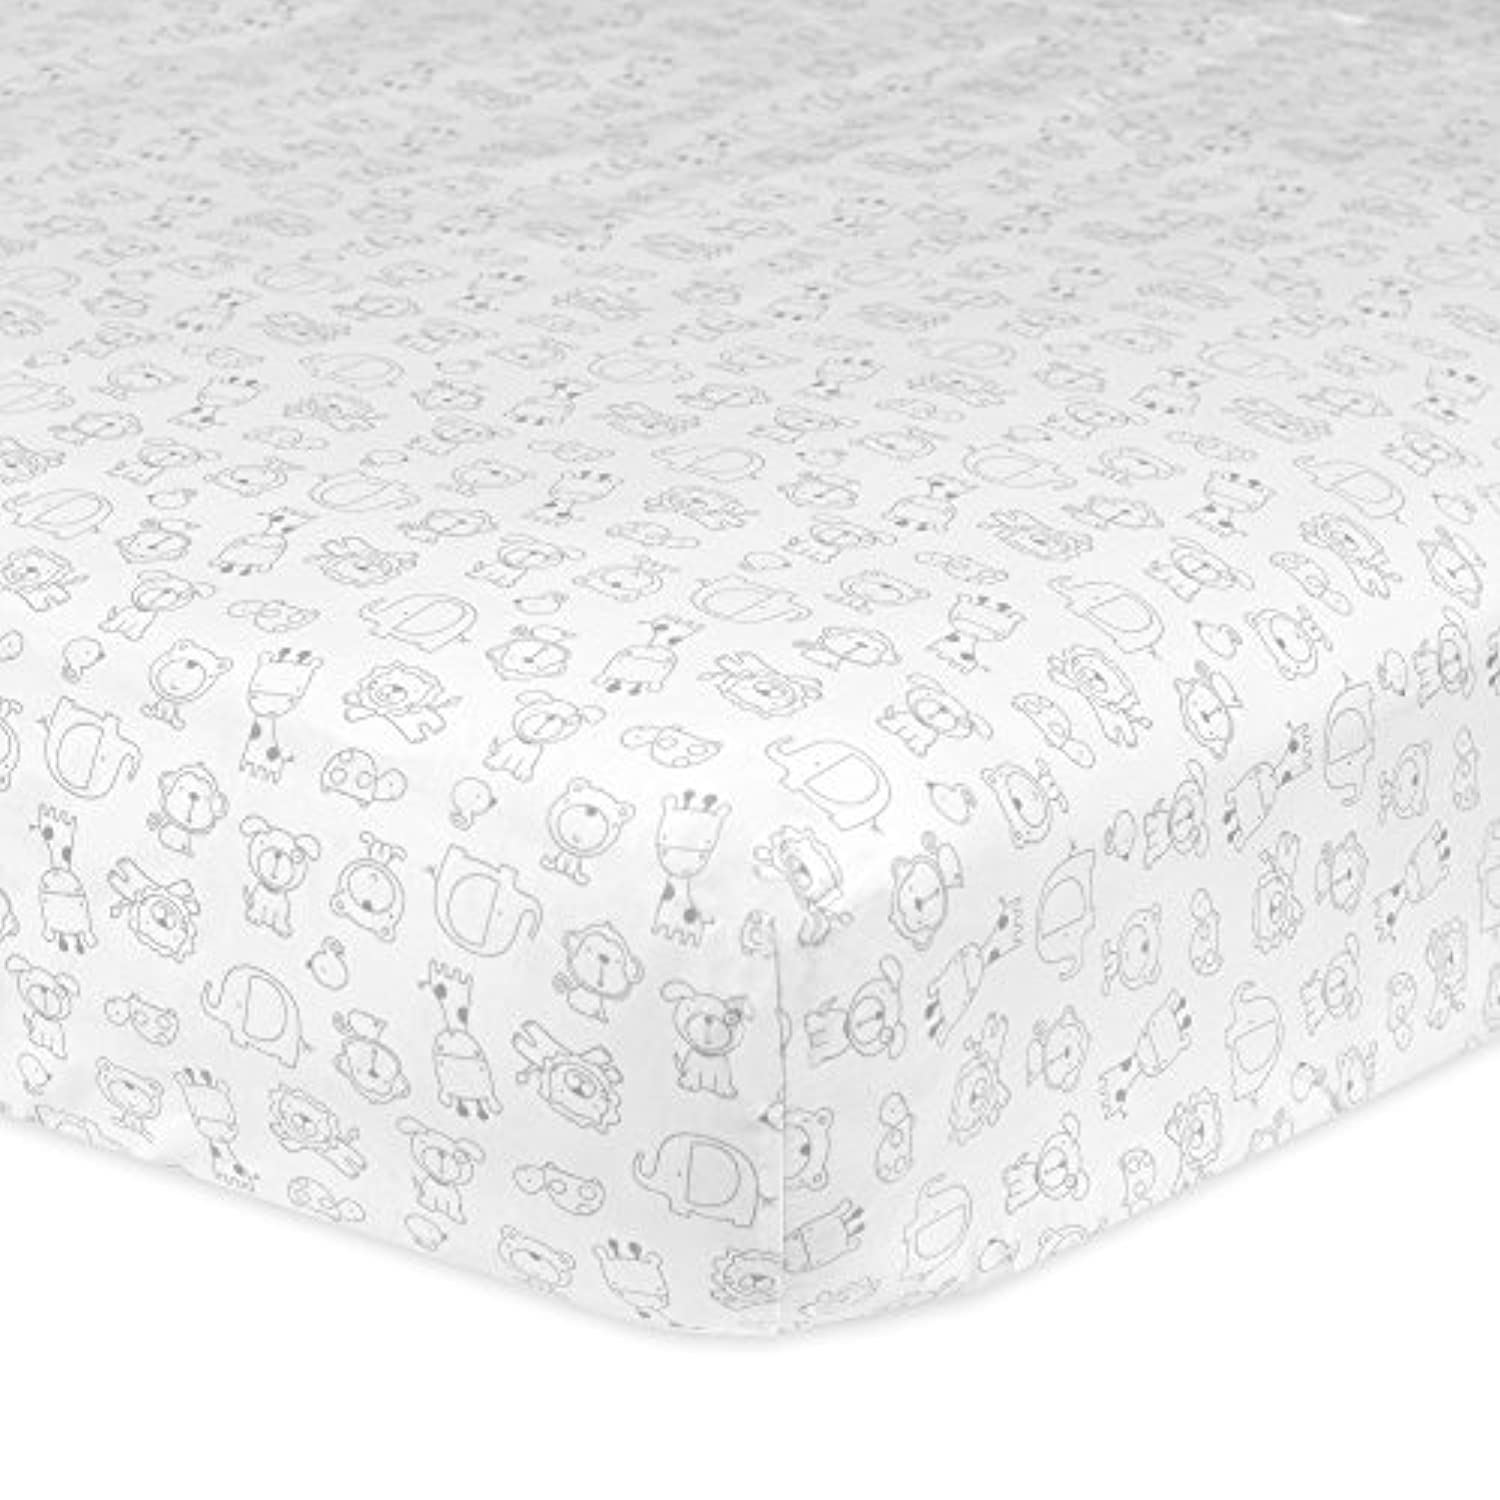 Gerber 100% Cotton Fitted Crib Sheet, Animal by Gerber